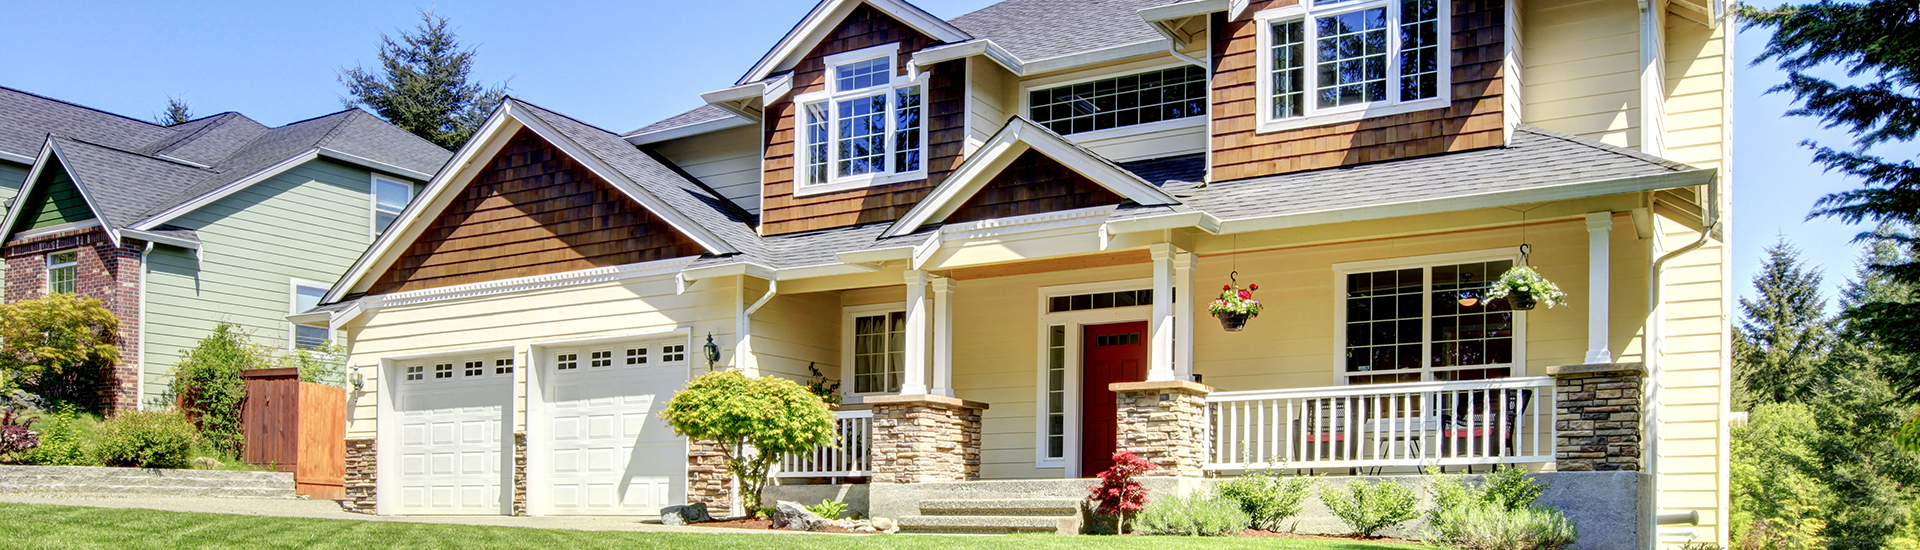 Homeowners Insurance in Middleburg Heights, Fairlawn, North Royalton, Medina, OH